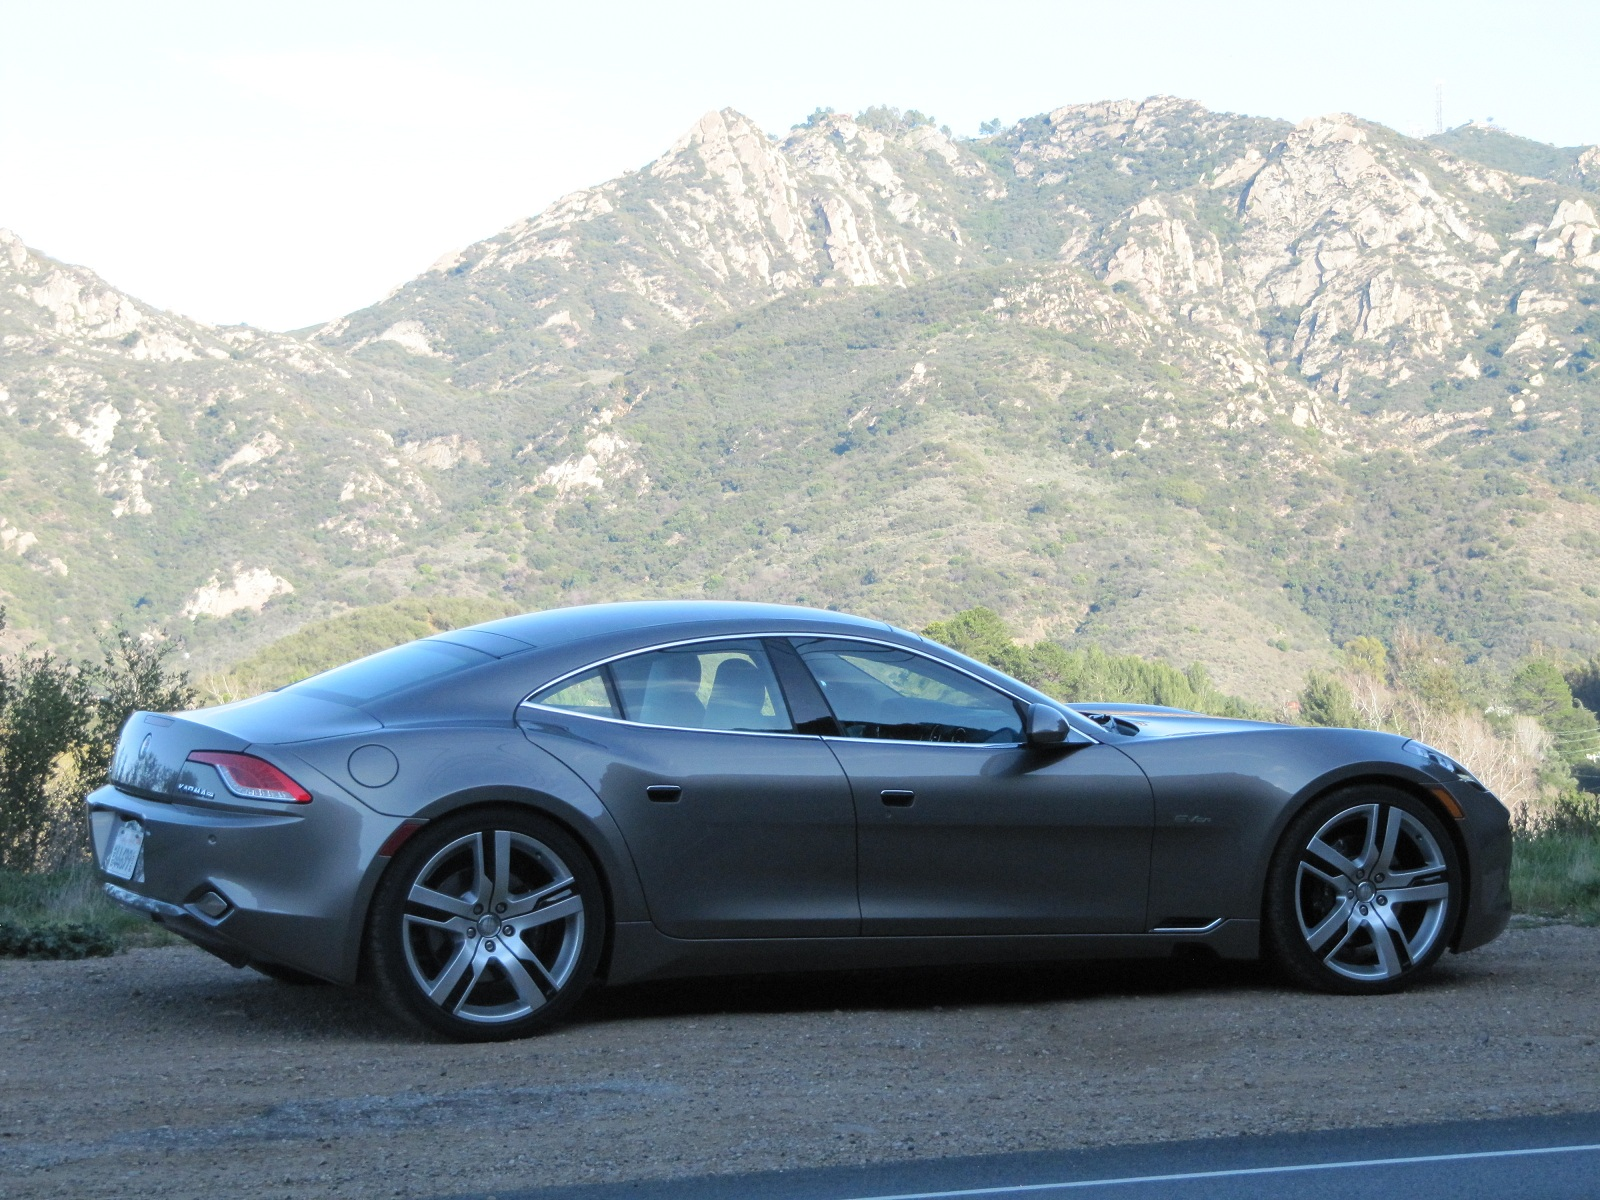 Fisker Karma No 2 Best Selling 4 Door Luxury Car In